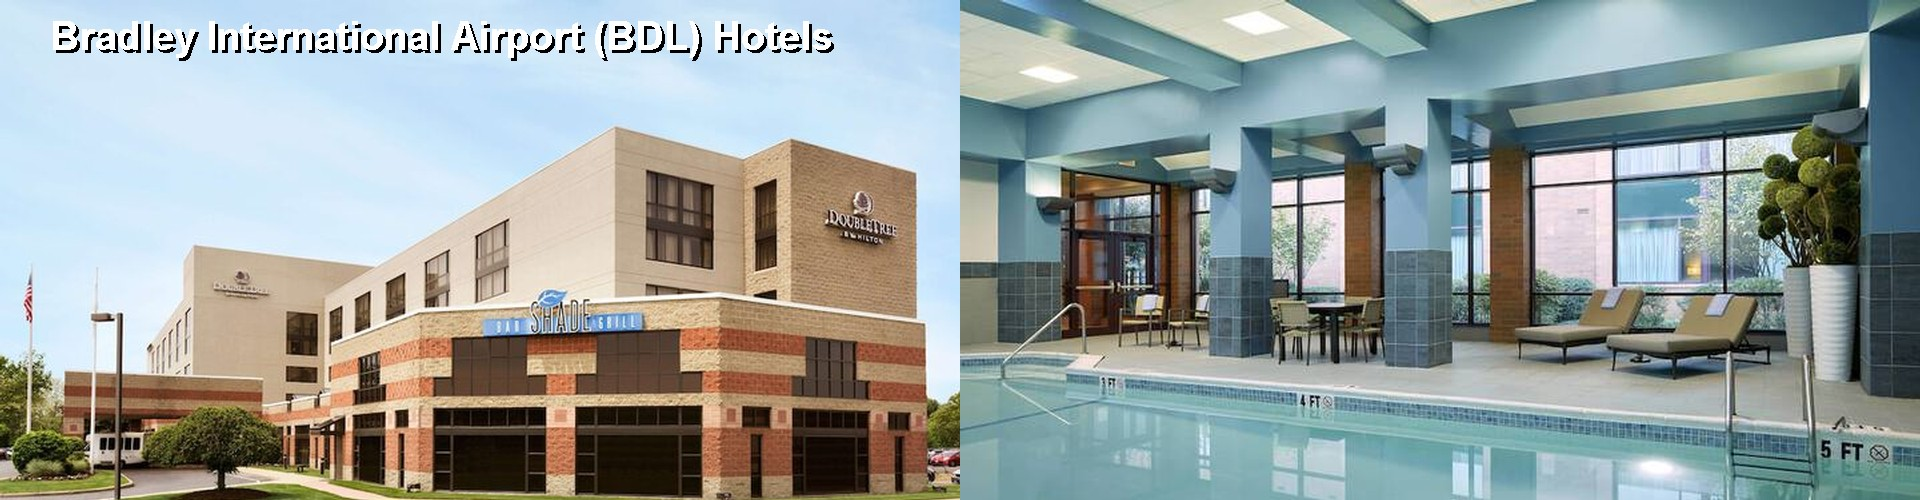 5 Best Hotels near Bradley International Airport (BDL)